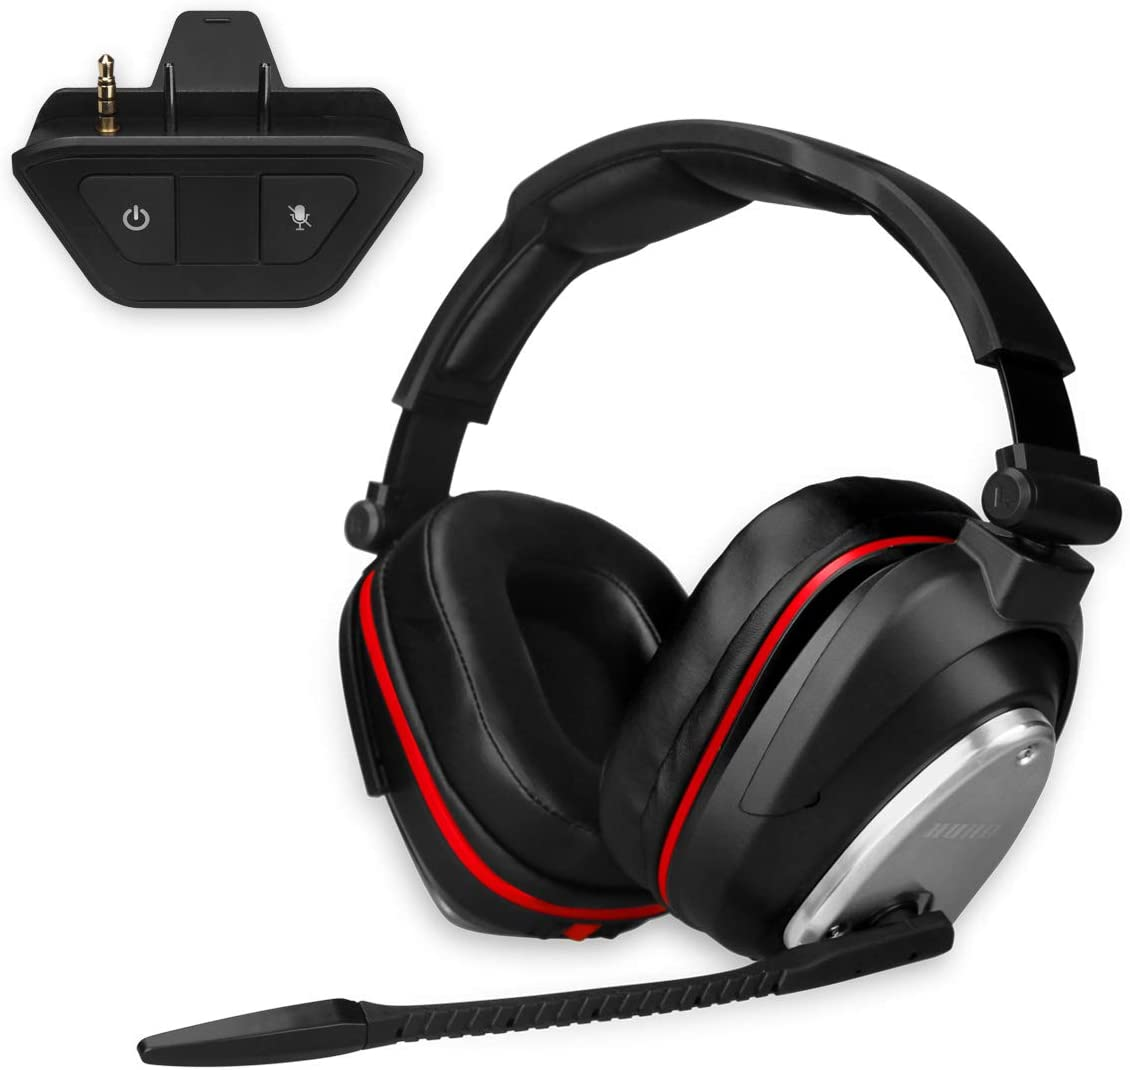 2.4G Wireless Gaming Headset for xbox one with wireless